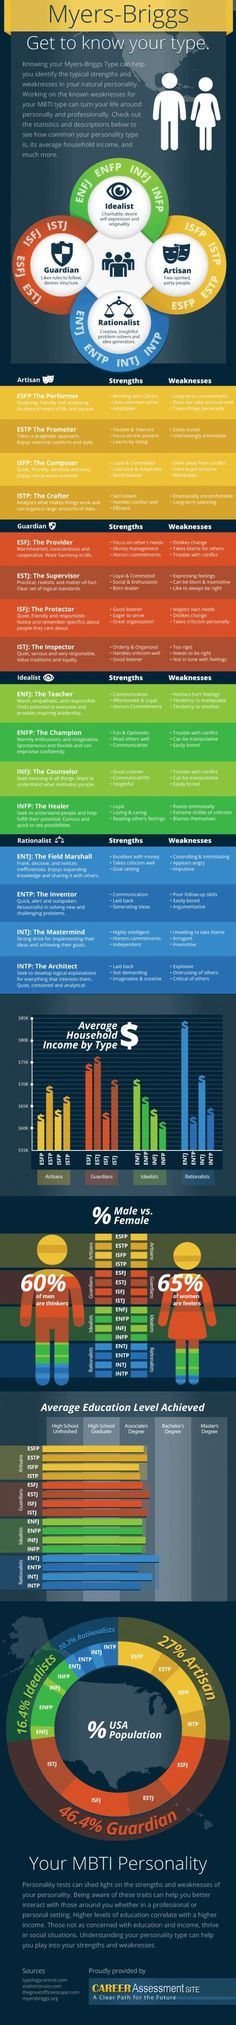 Myers-Briggs Personality Socio-Economic Status Infographic. Interesting information if you know your personality type.